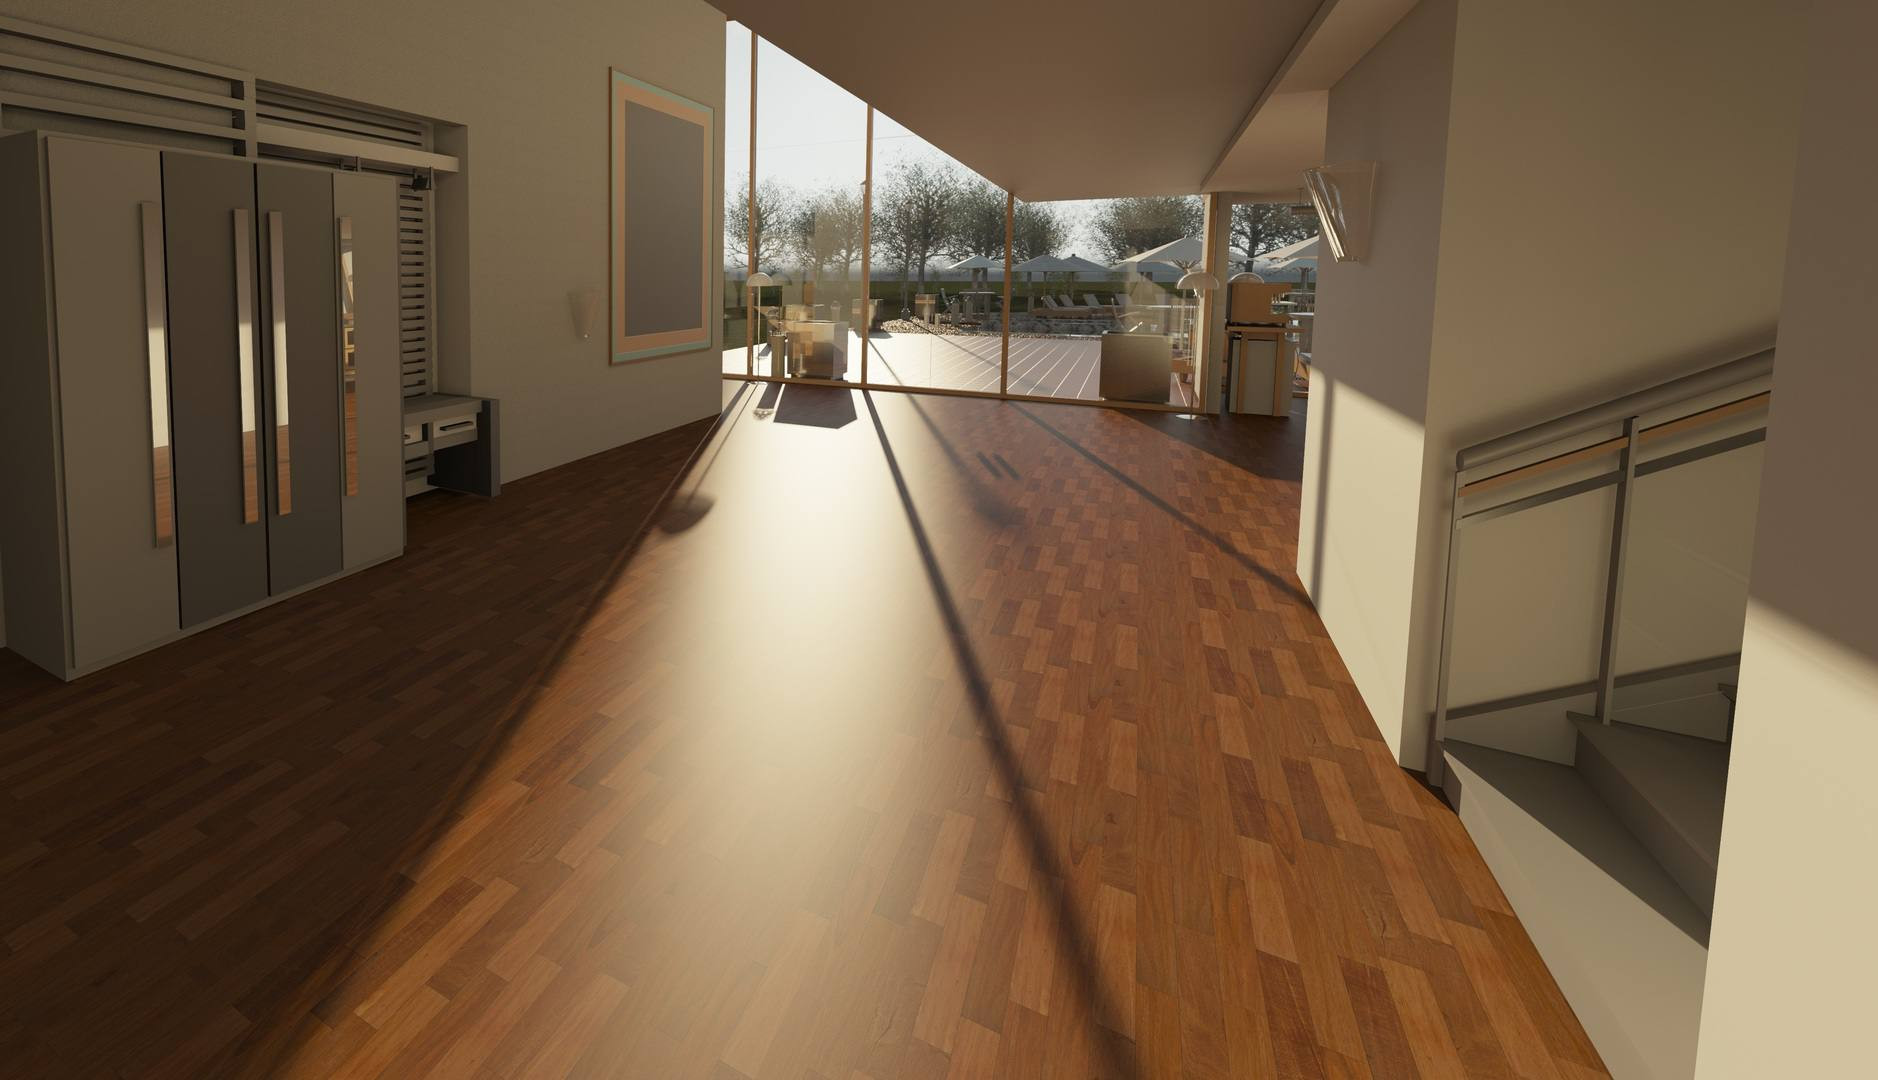 how much does it cost to put down hardwood floors of common flooring types currently used in renovation and building regarding architecture wood house floor interior window 917178 pxhere com 5ba27a2cc9e77c00503b27b9